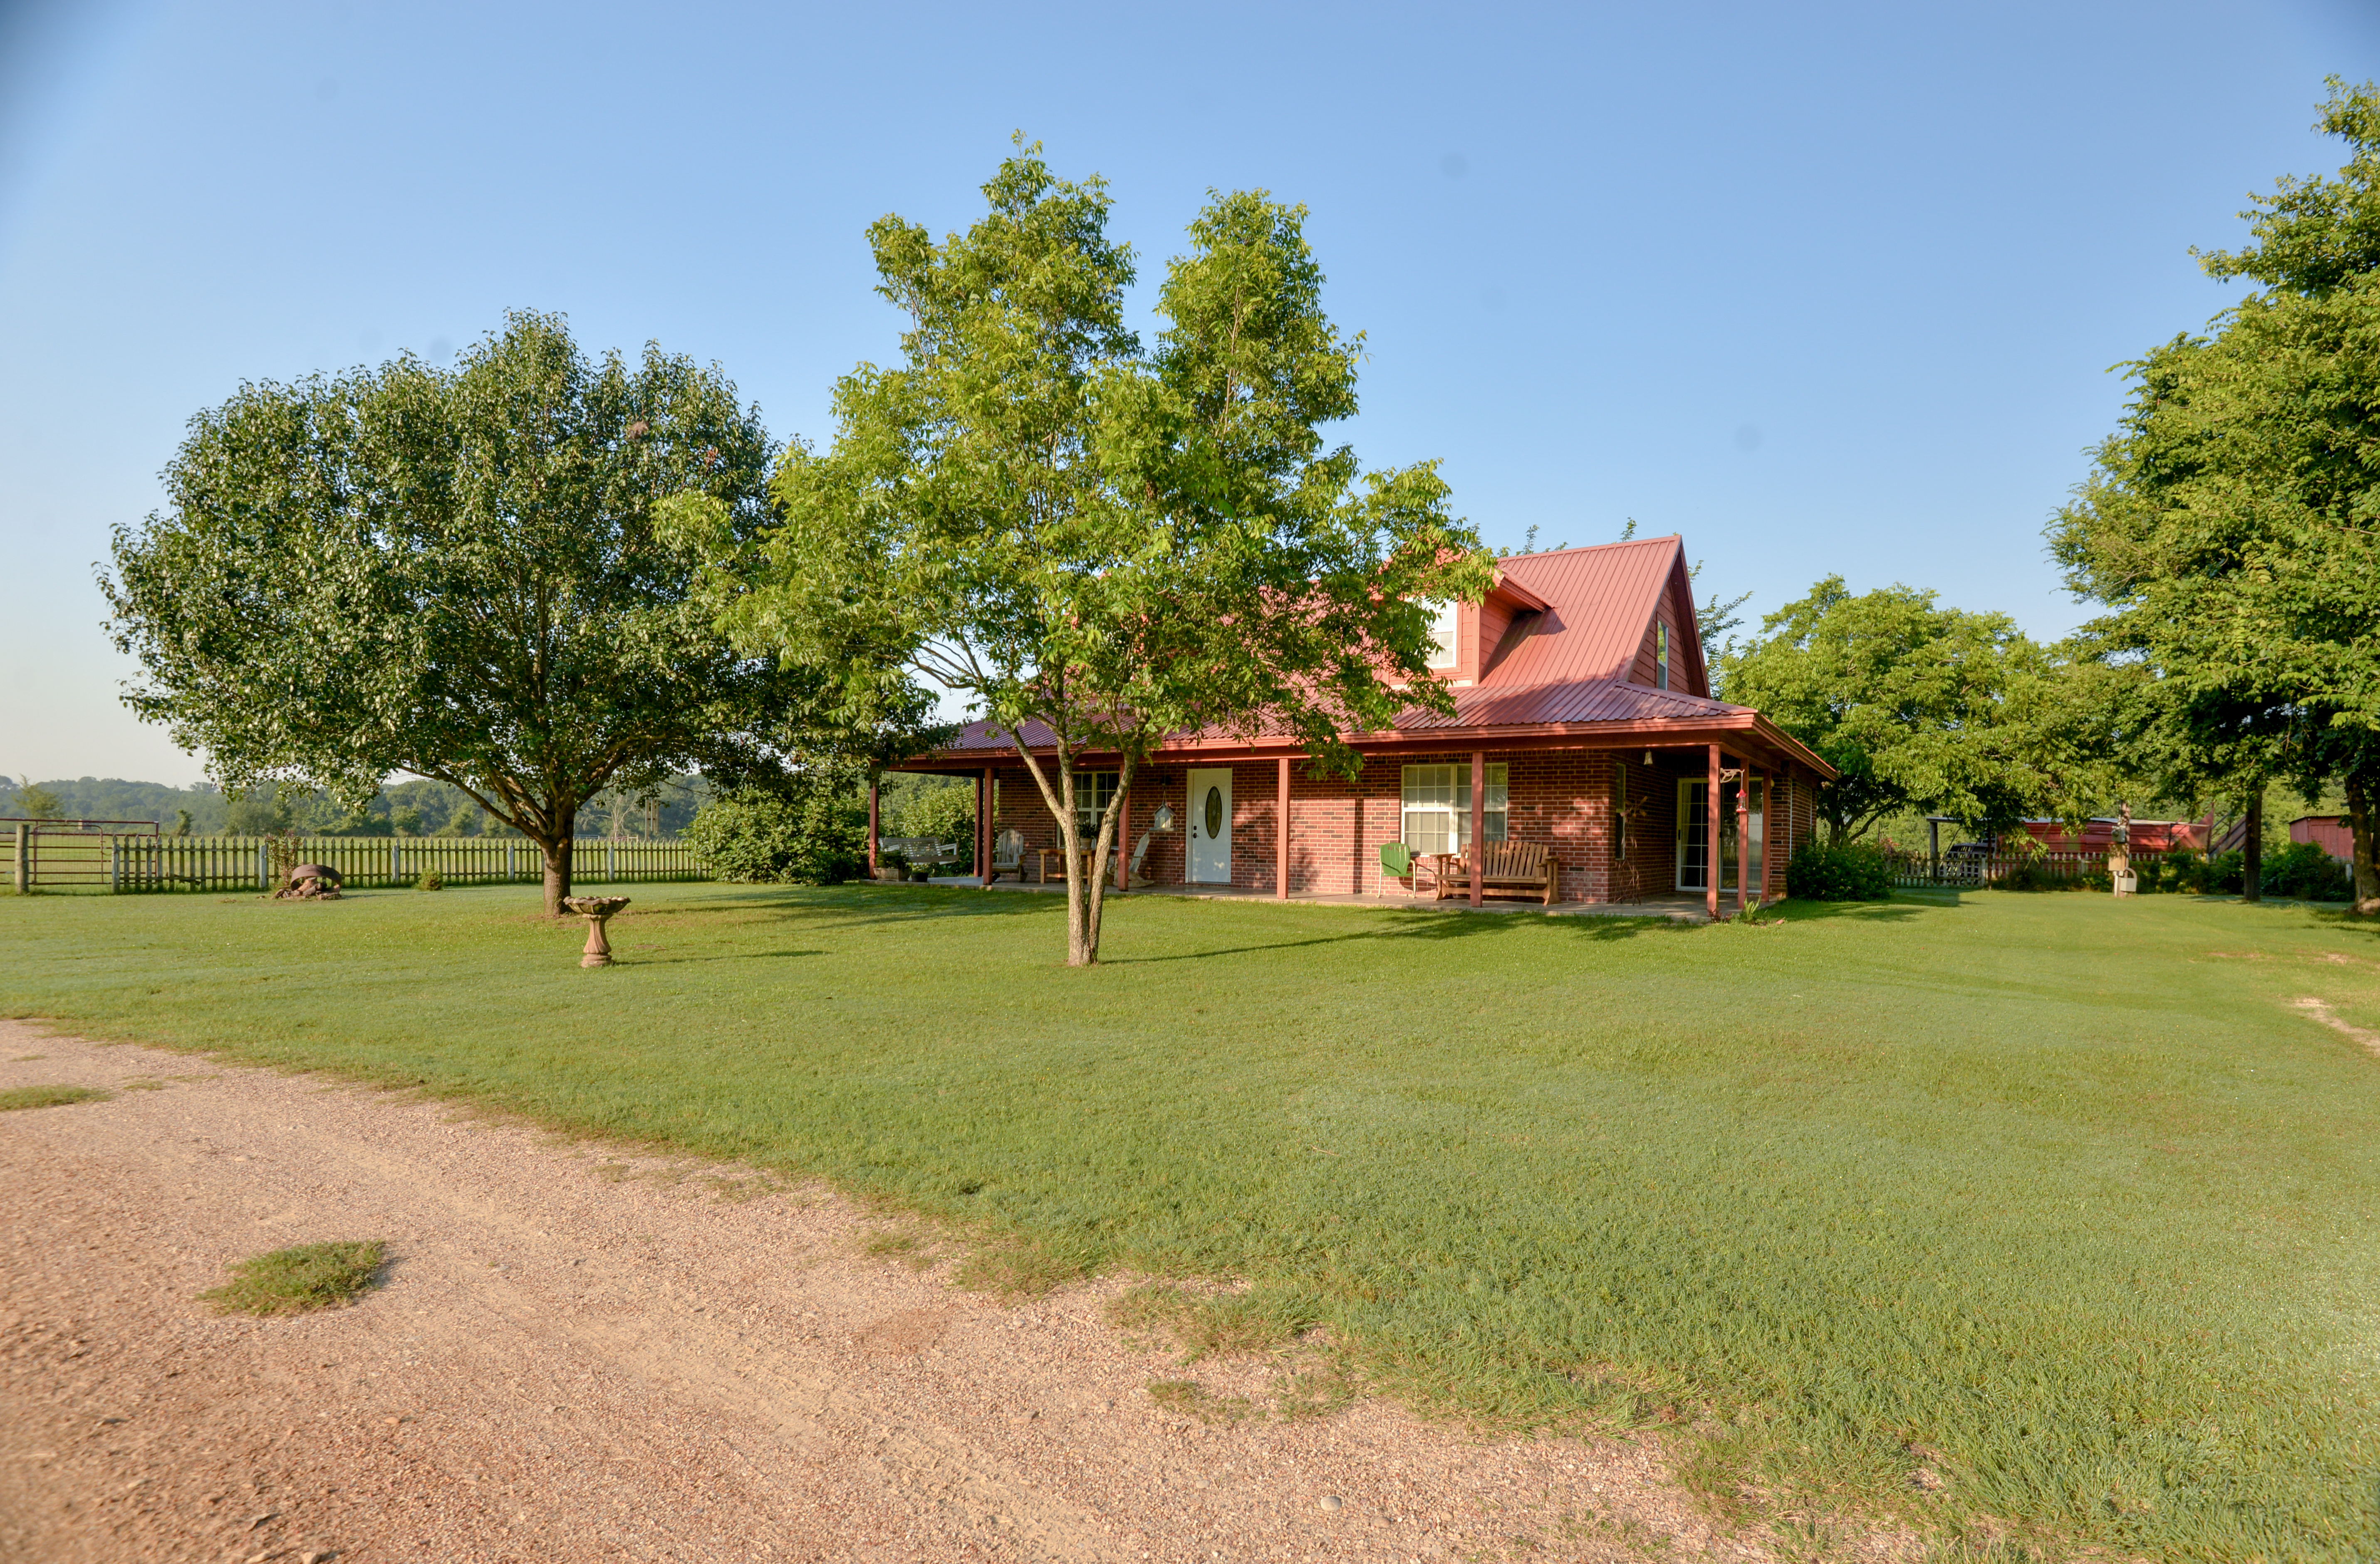 3008 Highway 36 S., Caldwell, TX 77836 ~ $689,000